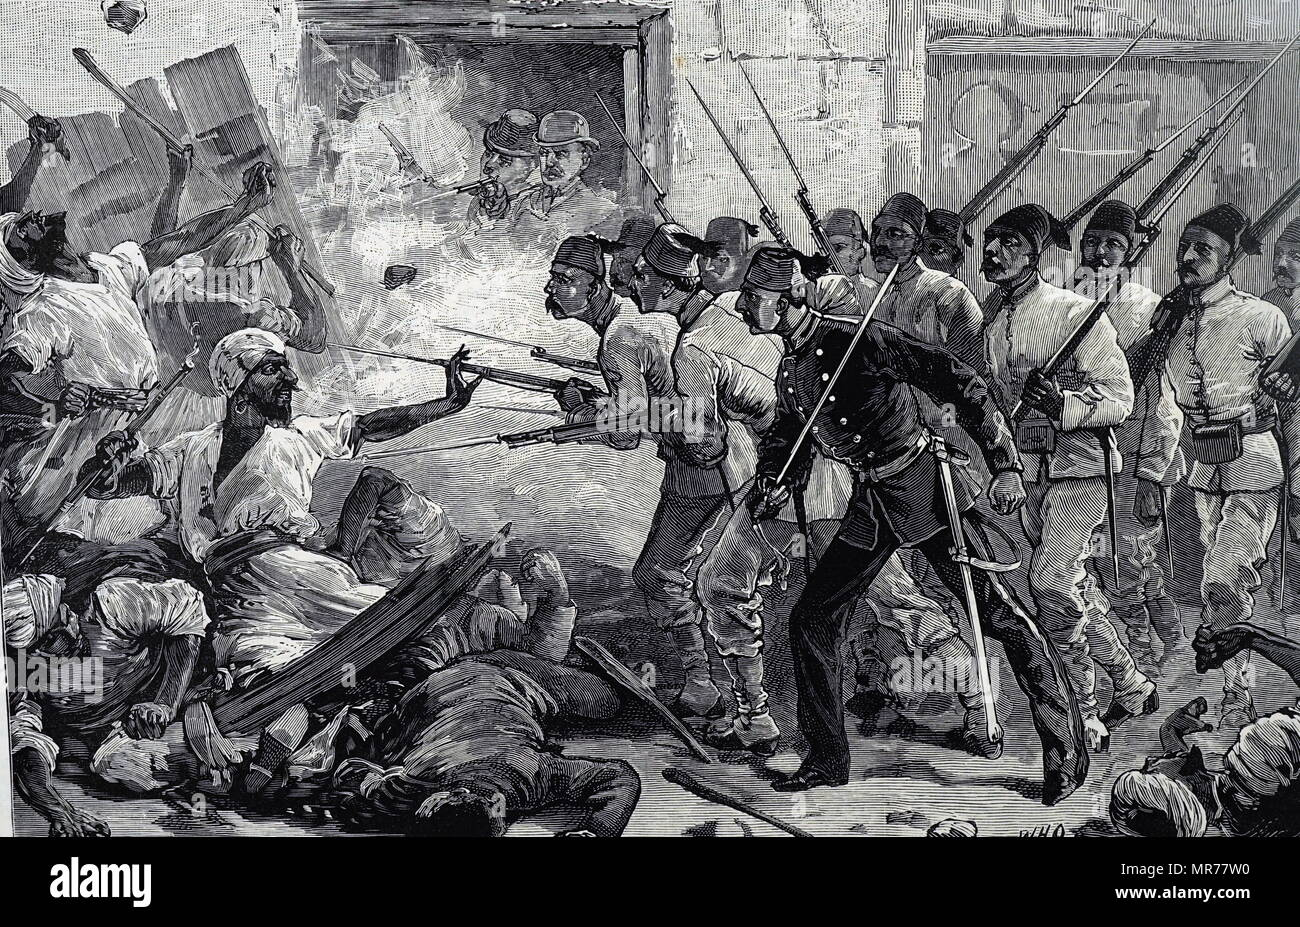 Engraving depicting fixed bayonets being used by troops against rioters in Alexandria. Dated 19th century - Stock Image